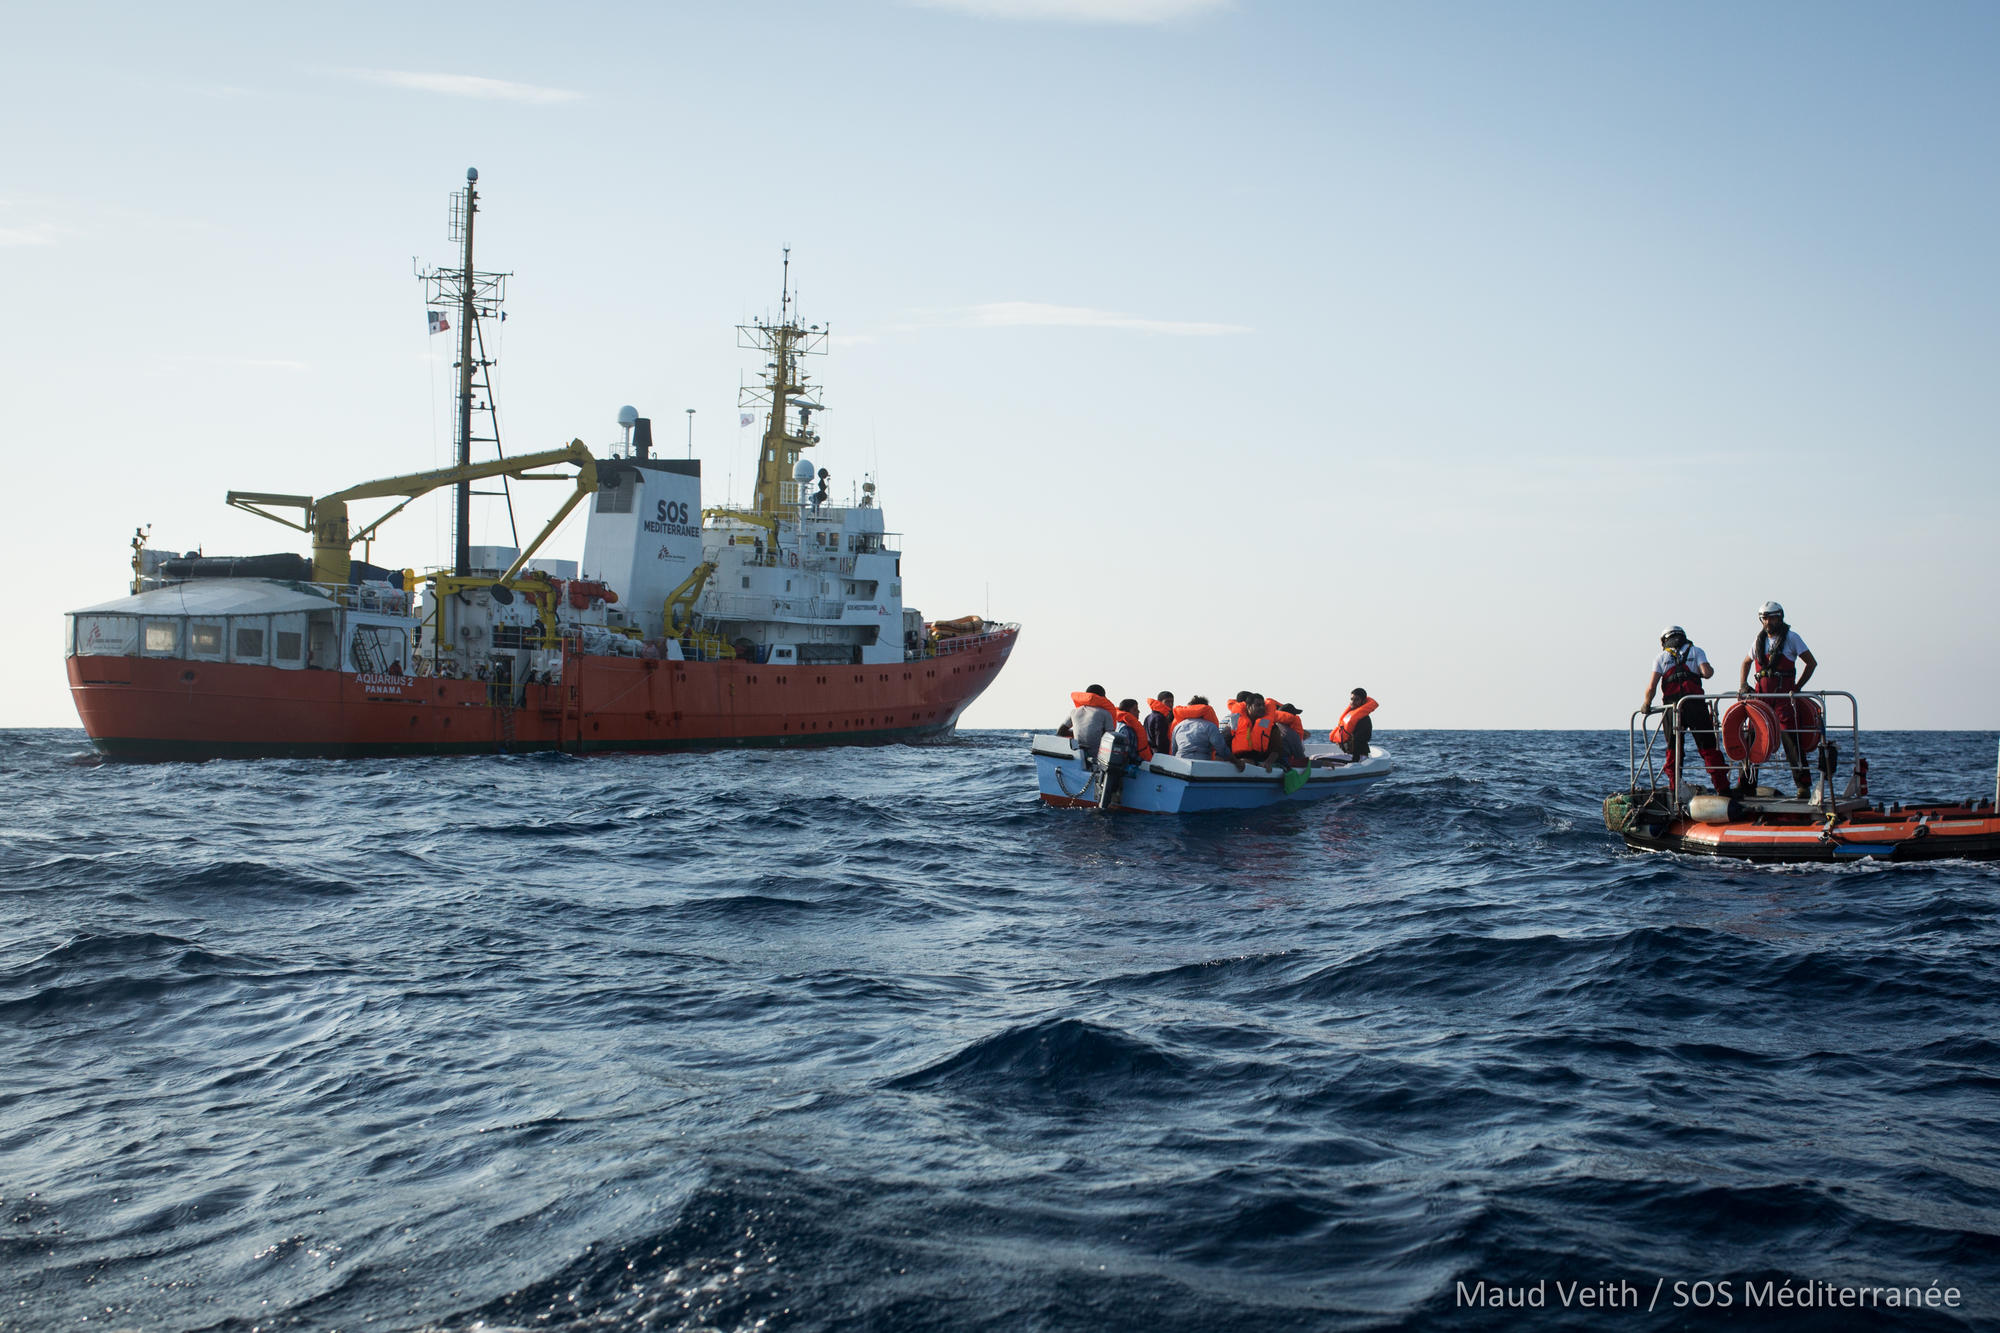 Aquarius forced to end operations as Europe condemns people to drown